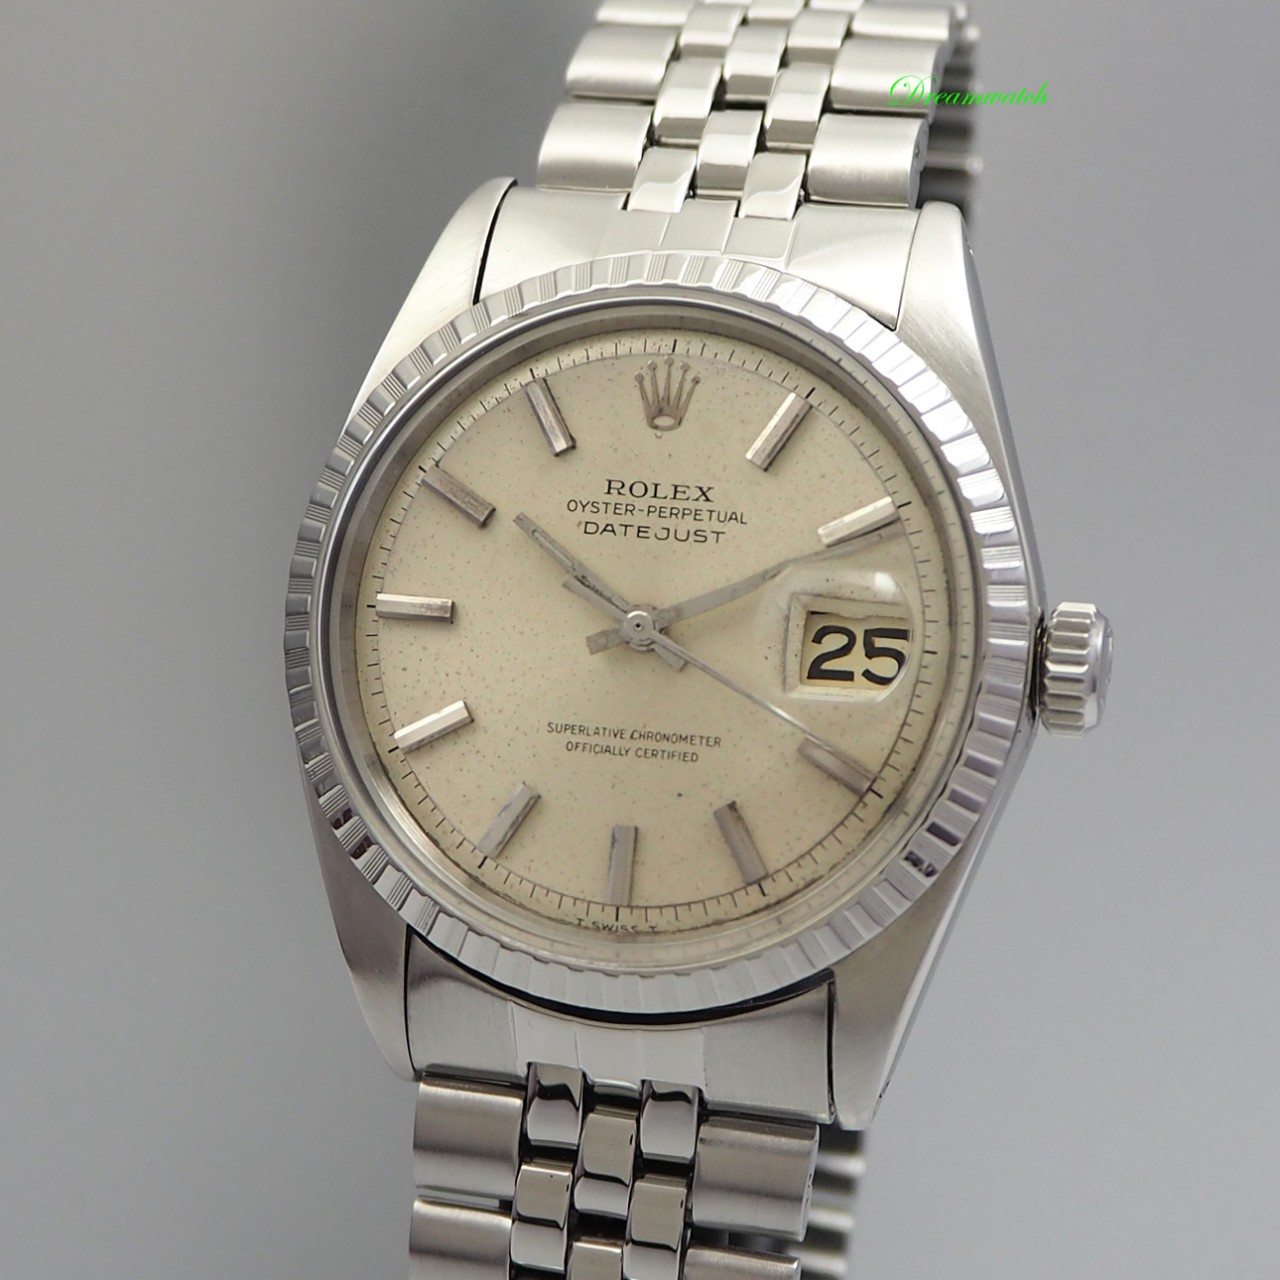 Rolex Oyster Perpetual Datejust 1603 from 1970 Stahl/ Stahl -serviced